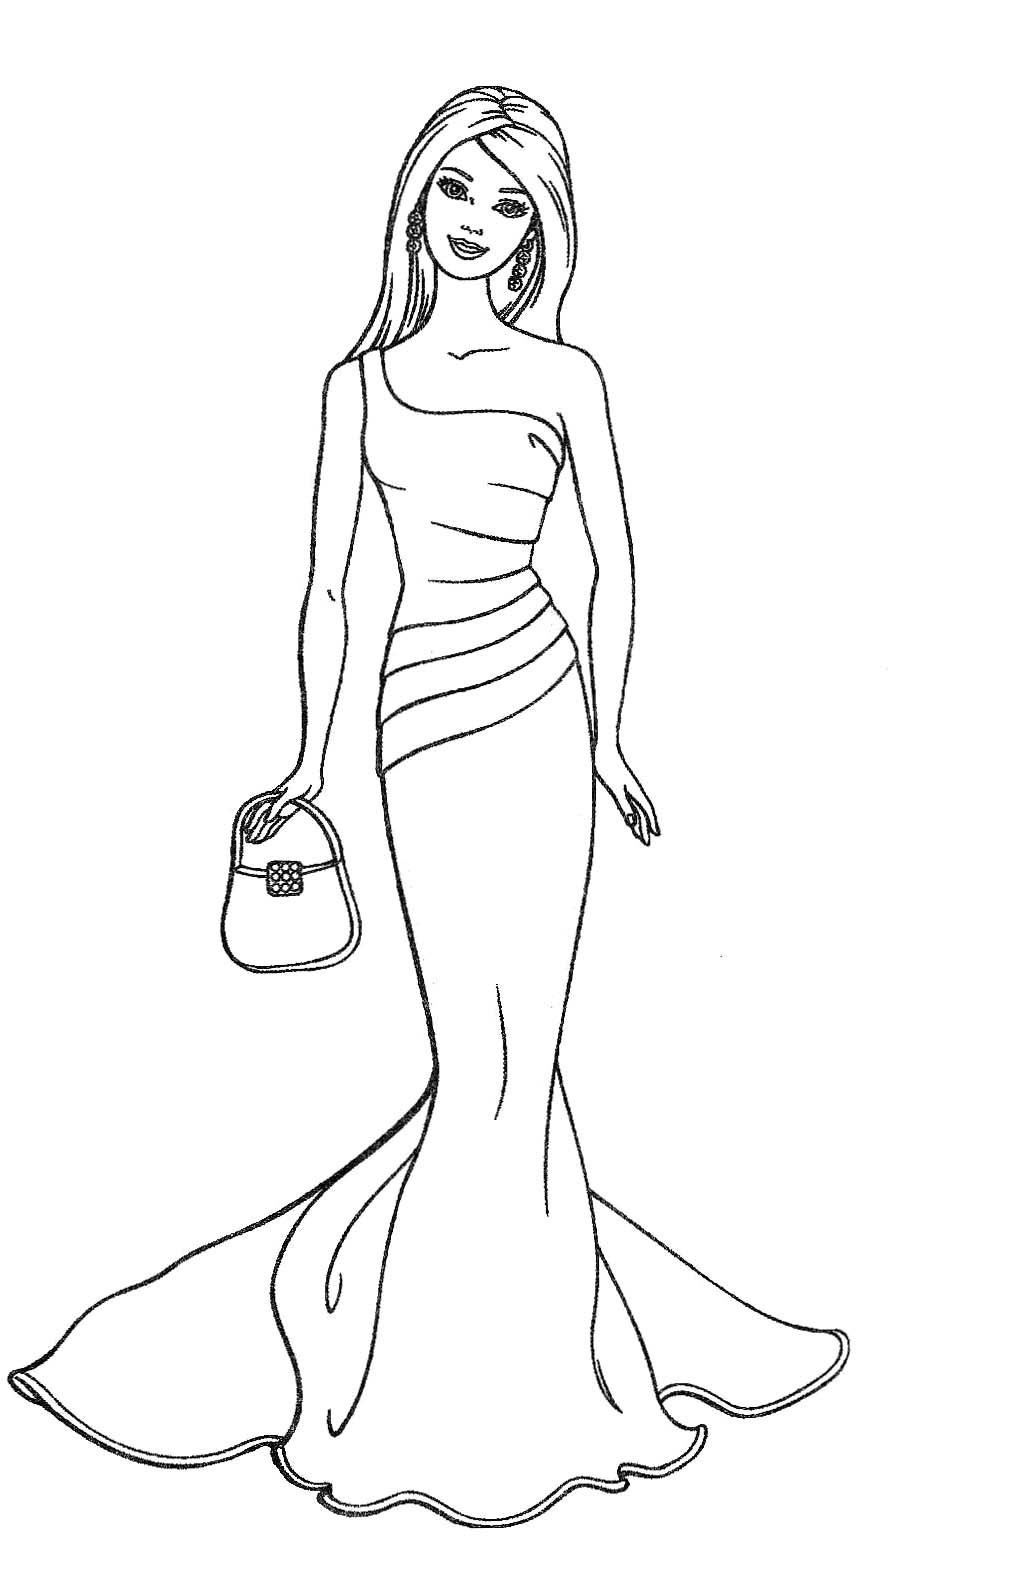 Coloring Pages Barbie  Barbie Coloring Pages Printable To Download